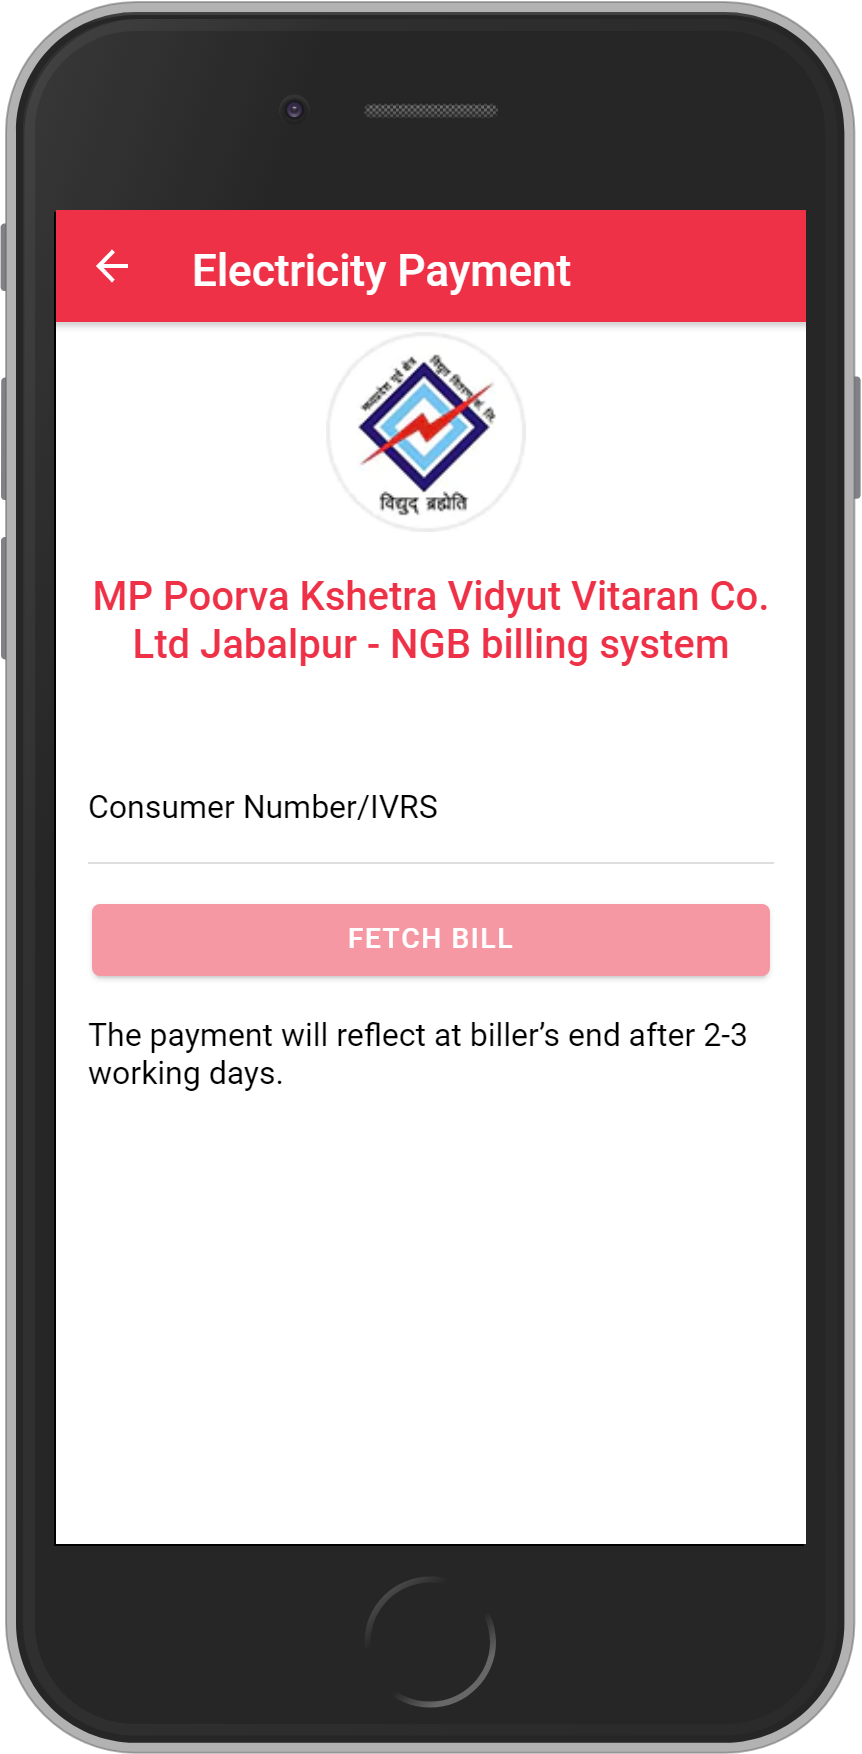 Get UNLIMITED <b>0.1%</b> CASHBACK on MP Poorva Kshetra Vidyut Vitaran Co. Ltd Jabalpur – NGB billing system Bill Payment.